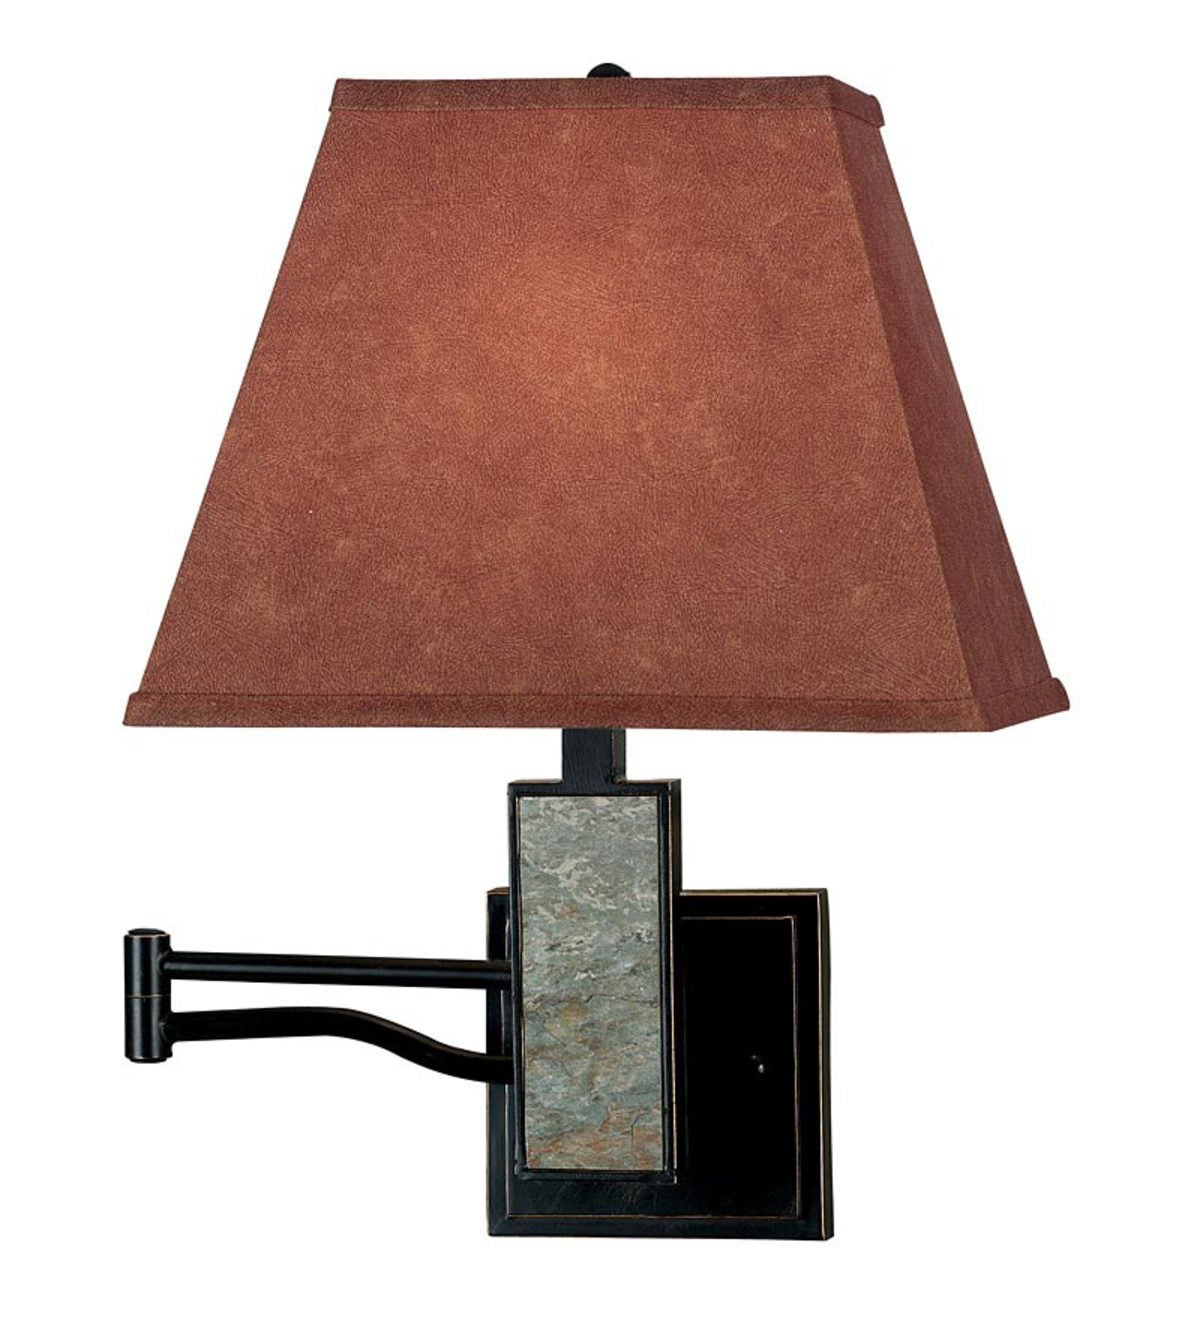 Rustic Space-Saving Swing-Arm Wall-Mounted Reading Lamp ...